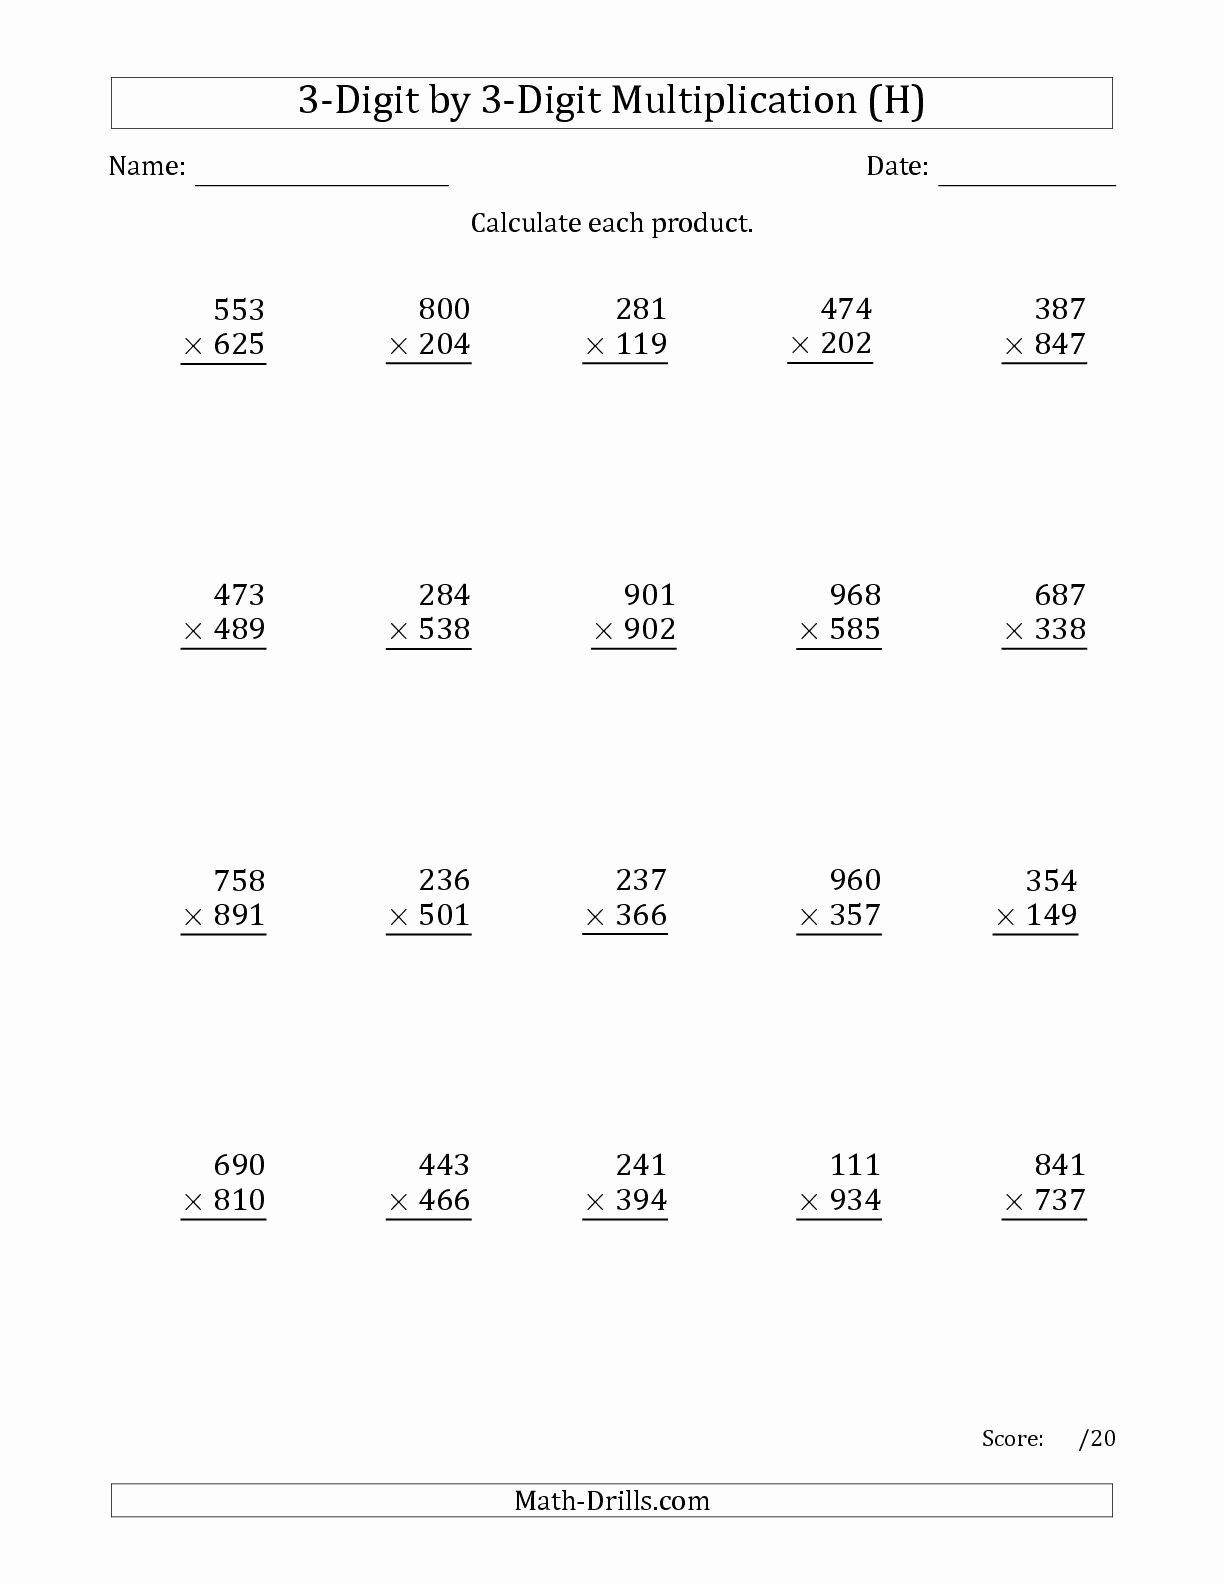 3 Digit Multiplication Worksheets Printable Inspirational the Multiplying 3 Digit by 3 Digit Numbers with Ma